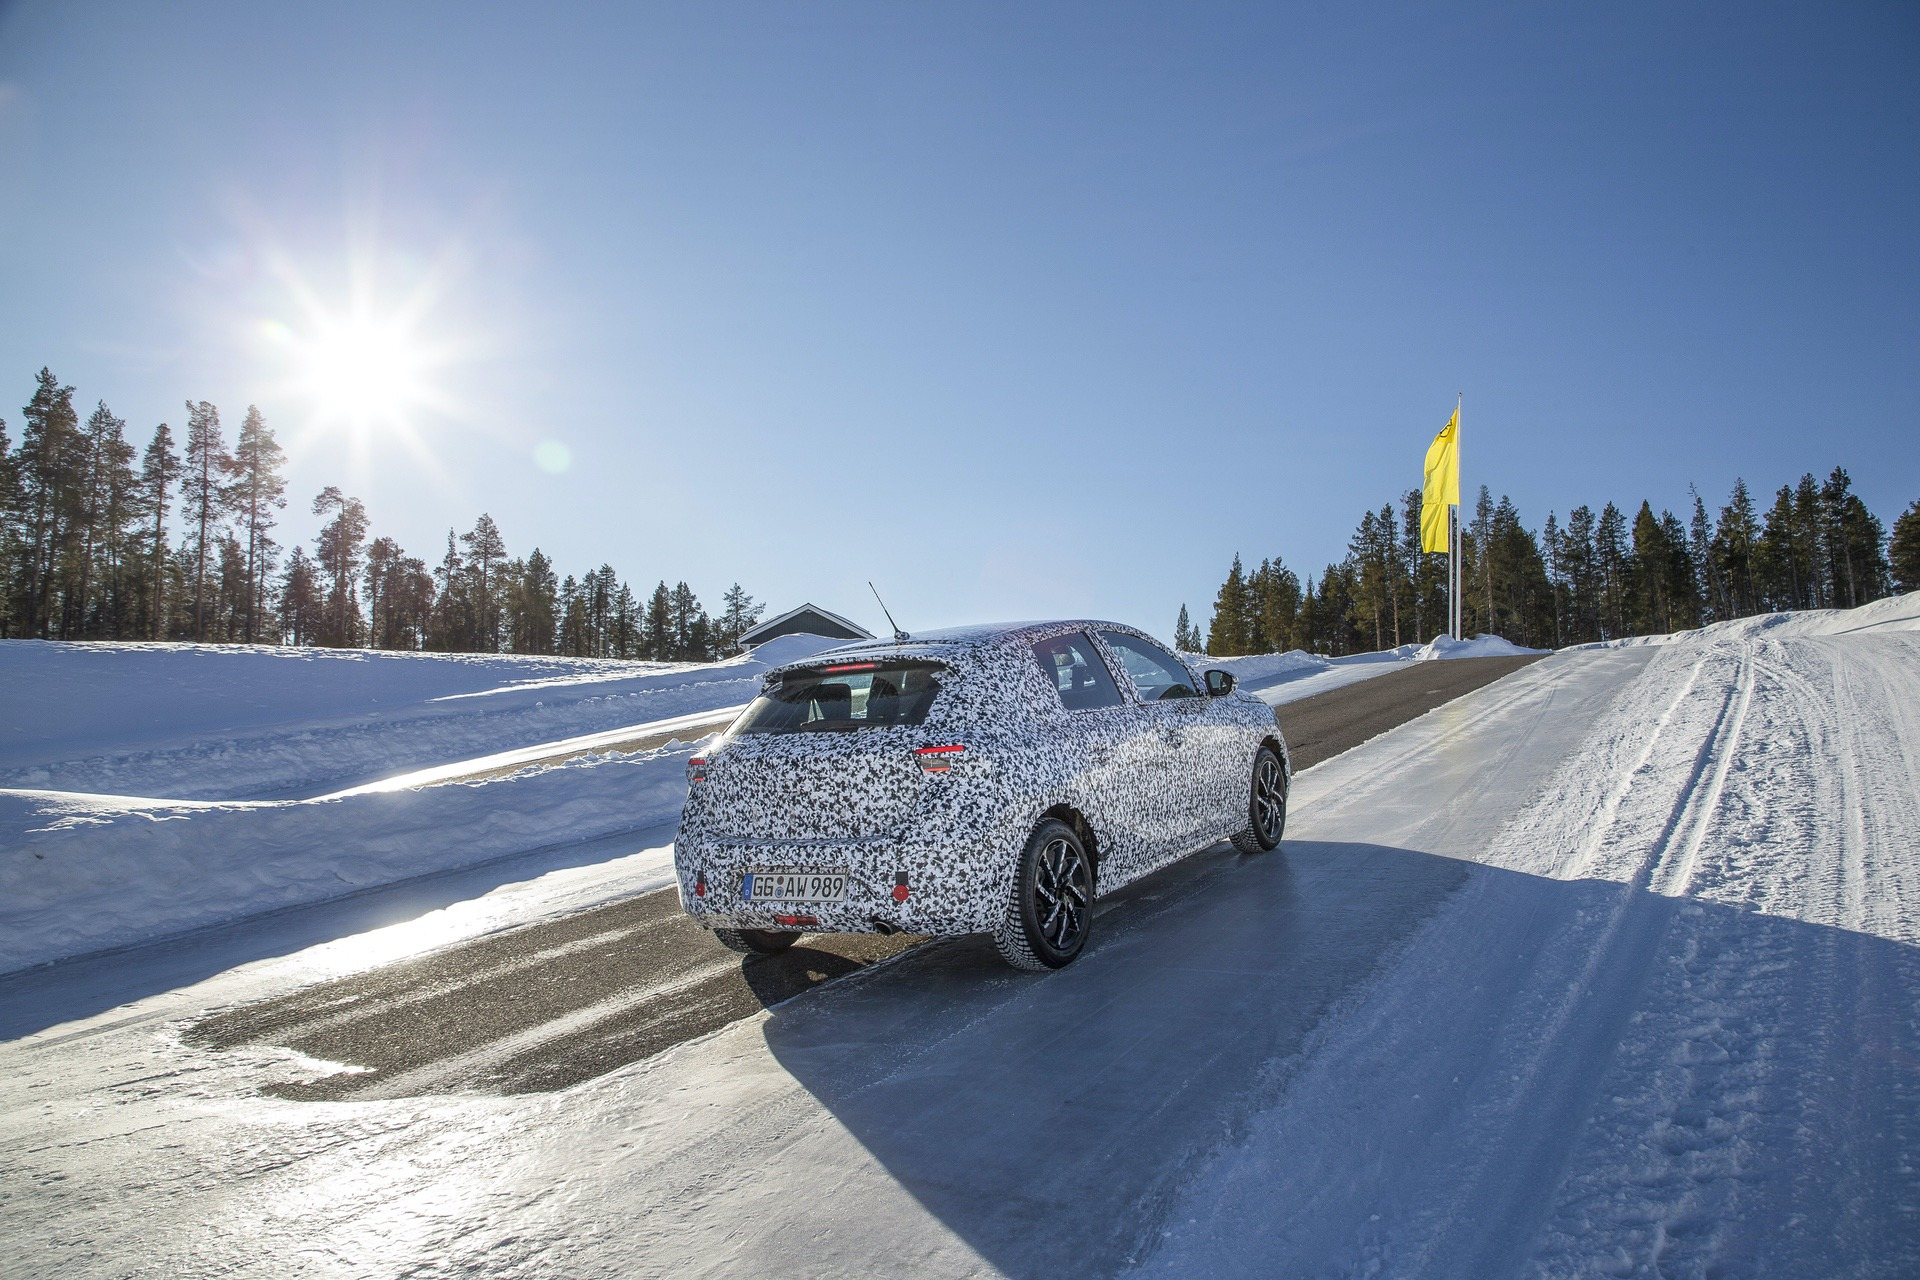 2019 Opel/Vauxhall Corsa winter tests